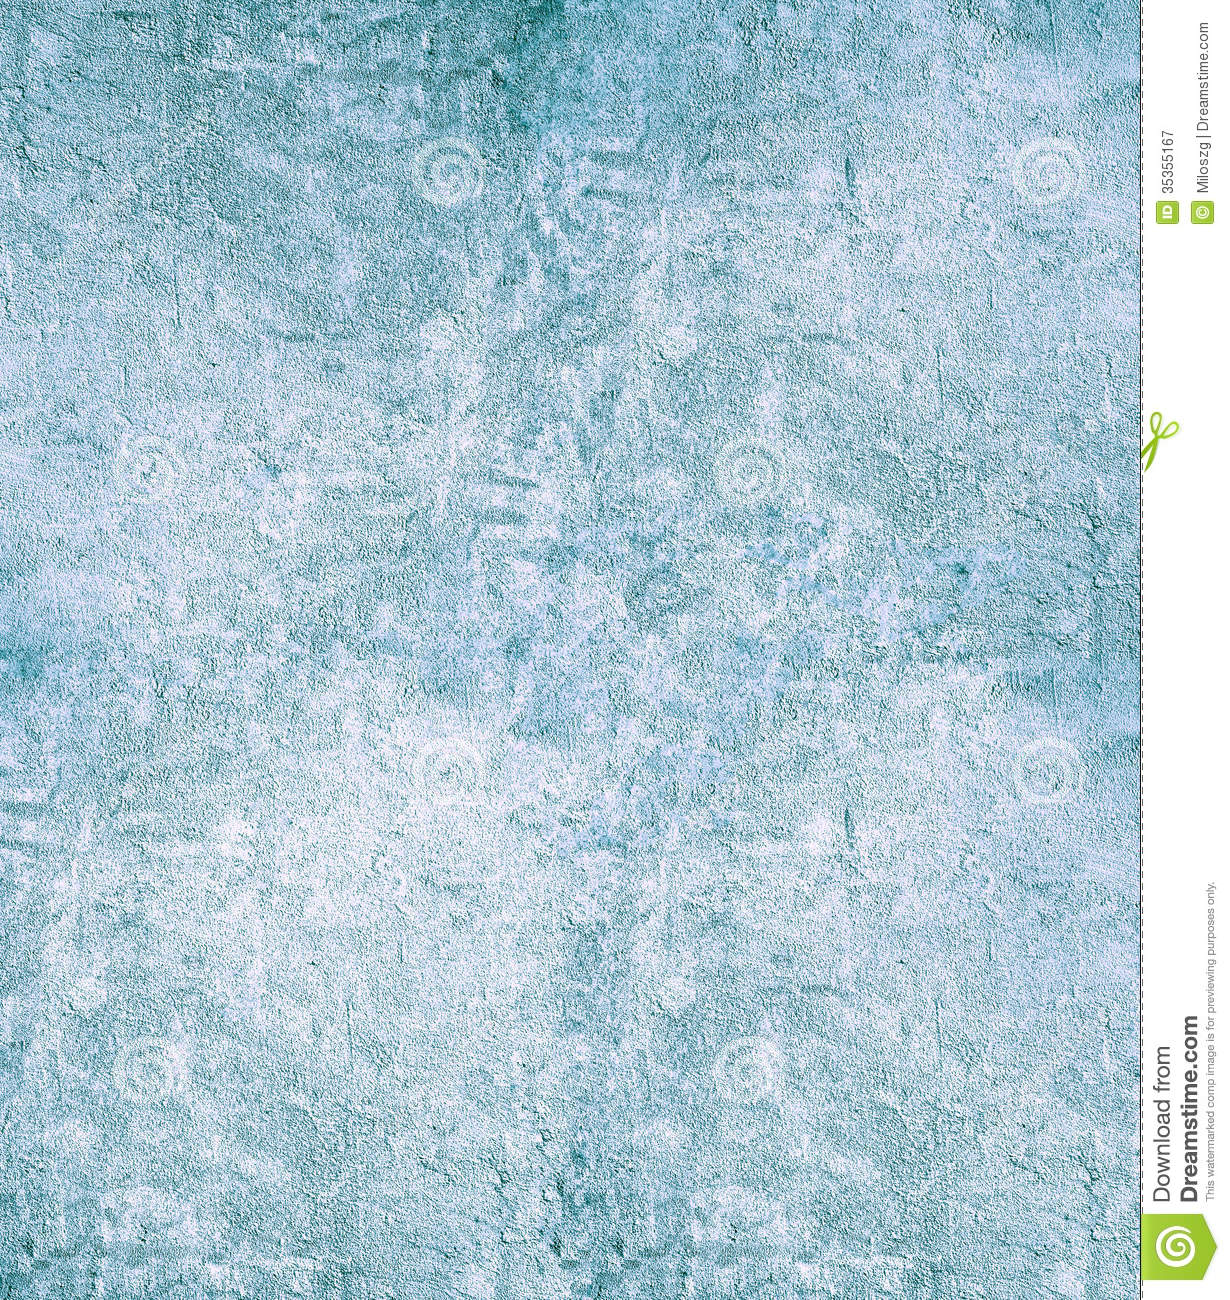 Grain Blue Paint Wall Background Or Texture Royalty Free